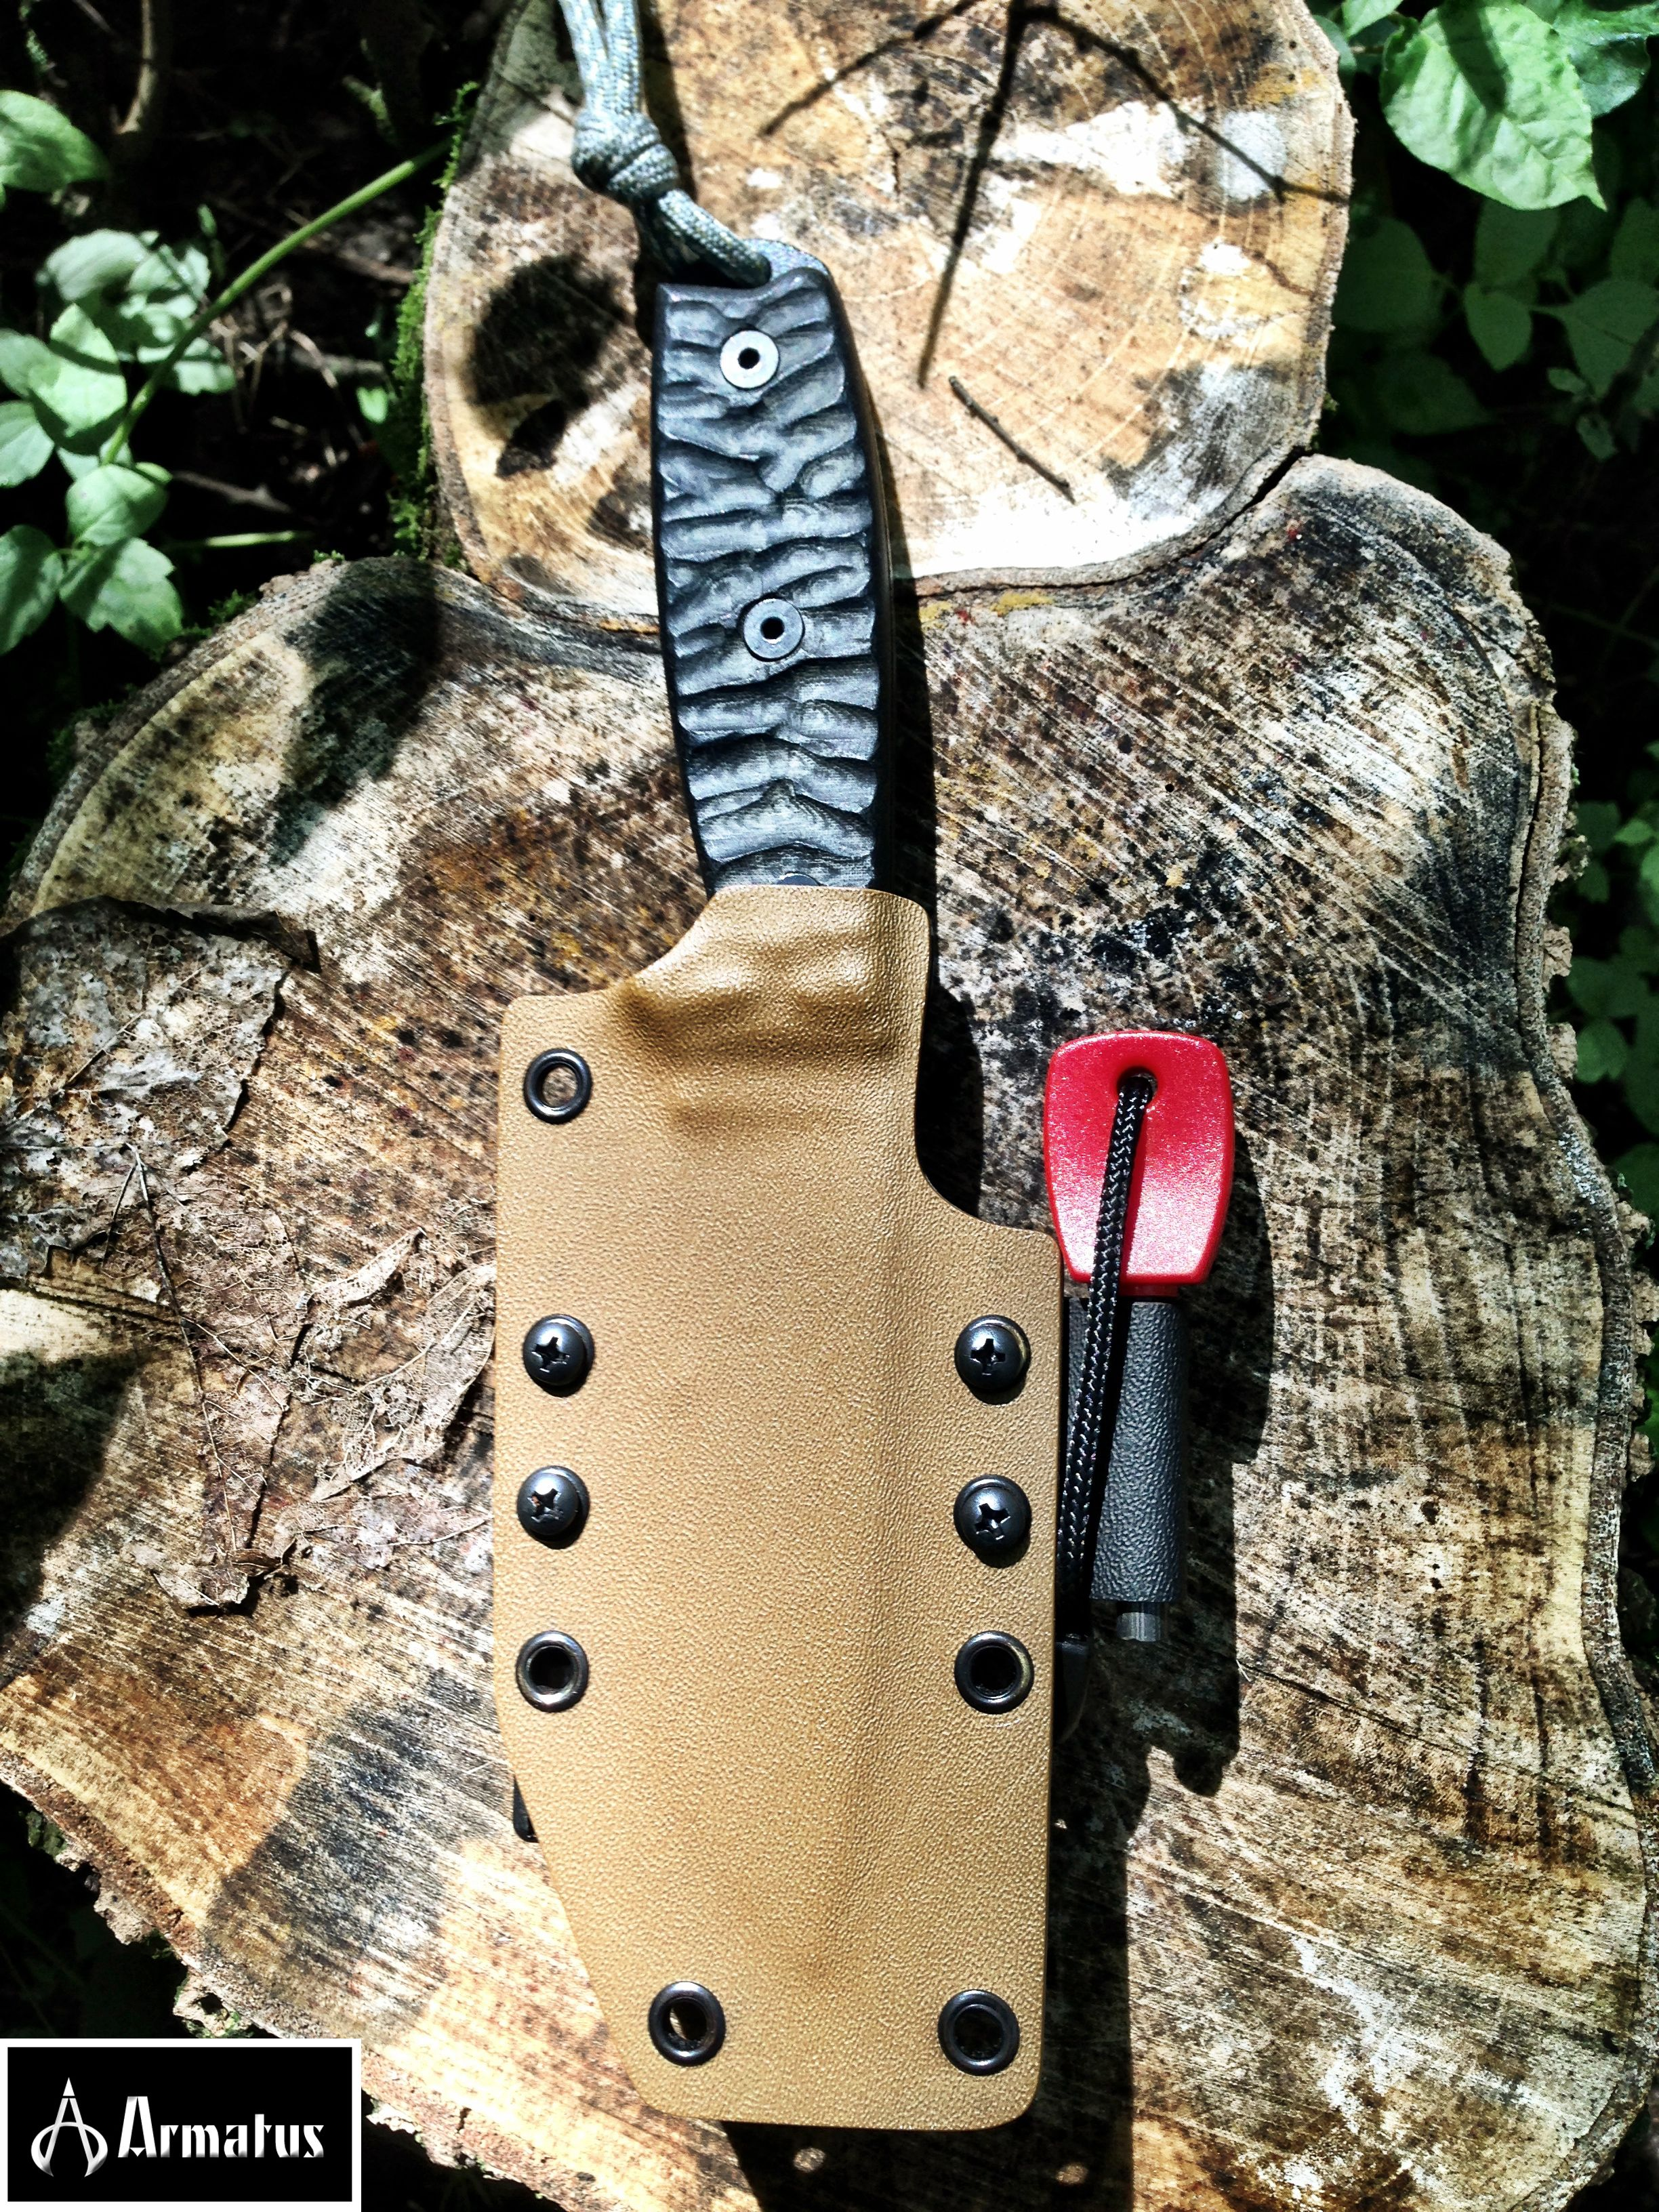 flint and armatus woodsman sheath ultimate outdoor survival gear